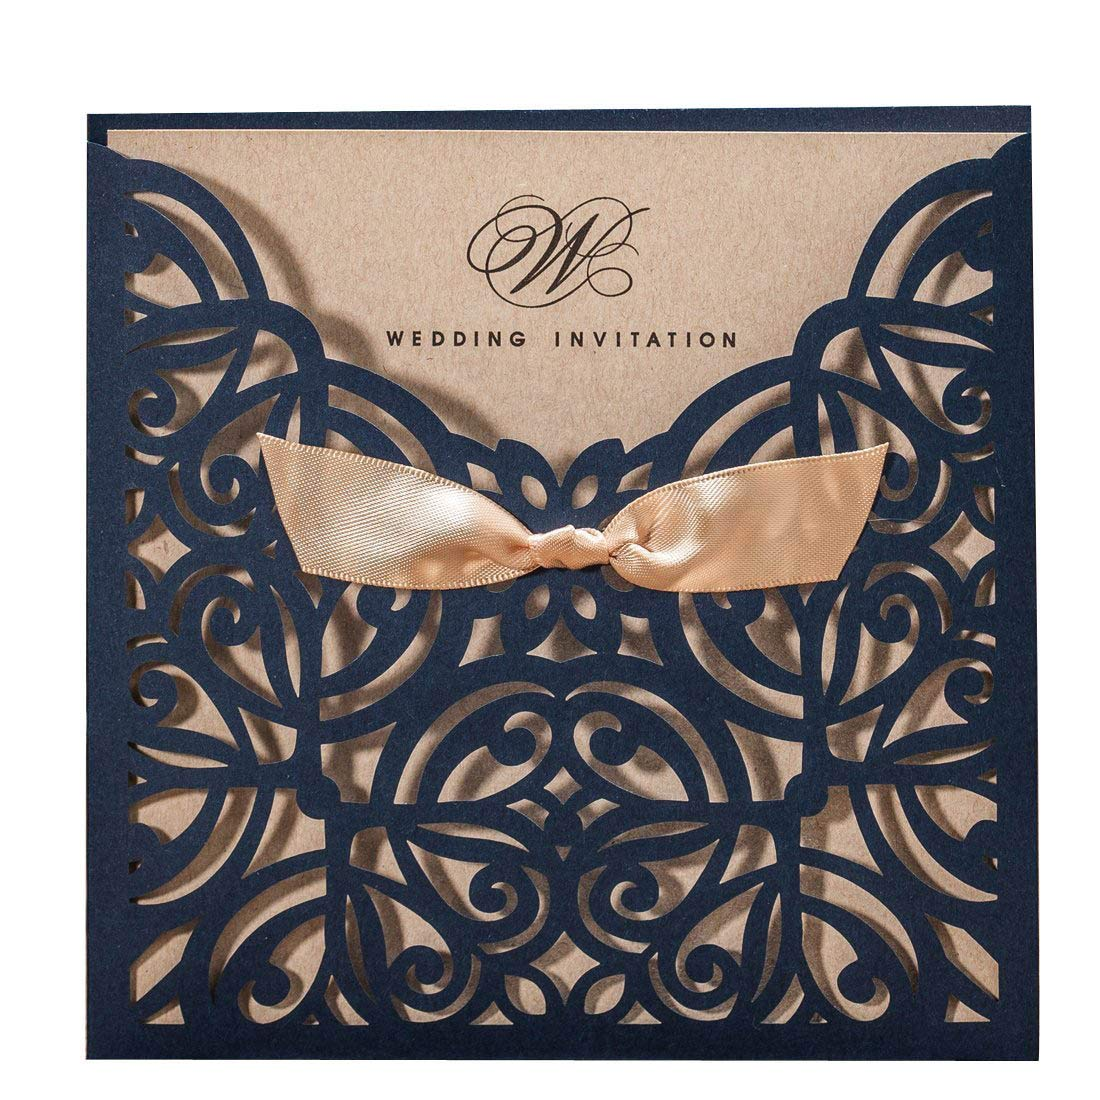 WISHMADE Laser Cut Wedding Invitations Cards with Bow Lace Sleeve Navy Blue Rustic Cardstock for Engagement Baby Shower Birthday Quinceanera (50 Pieces, White with Pink)